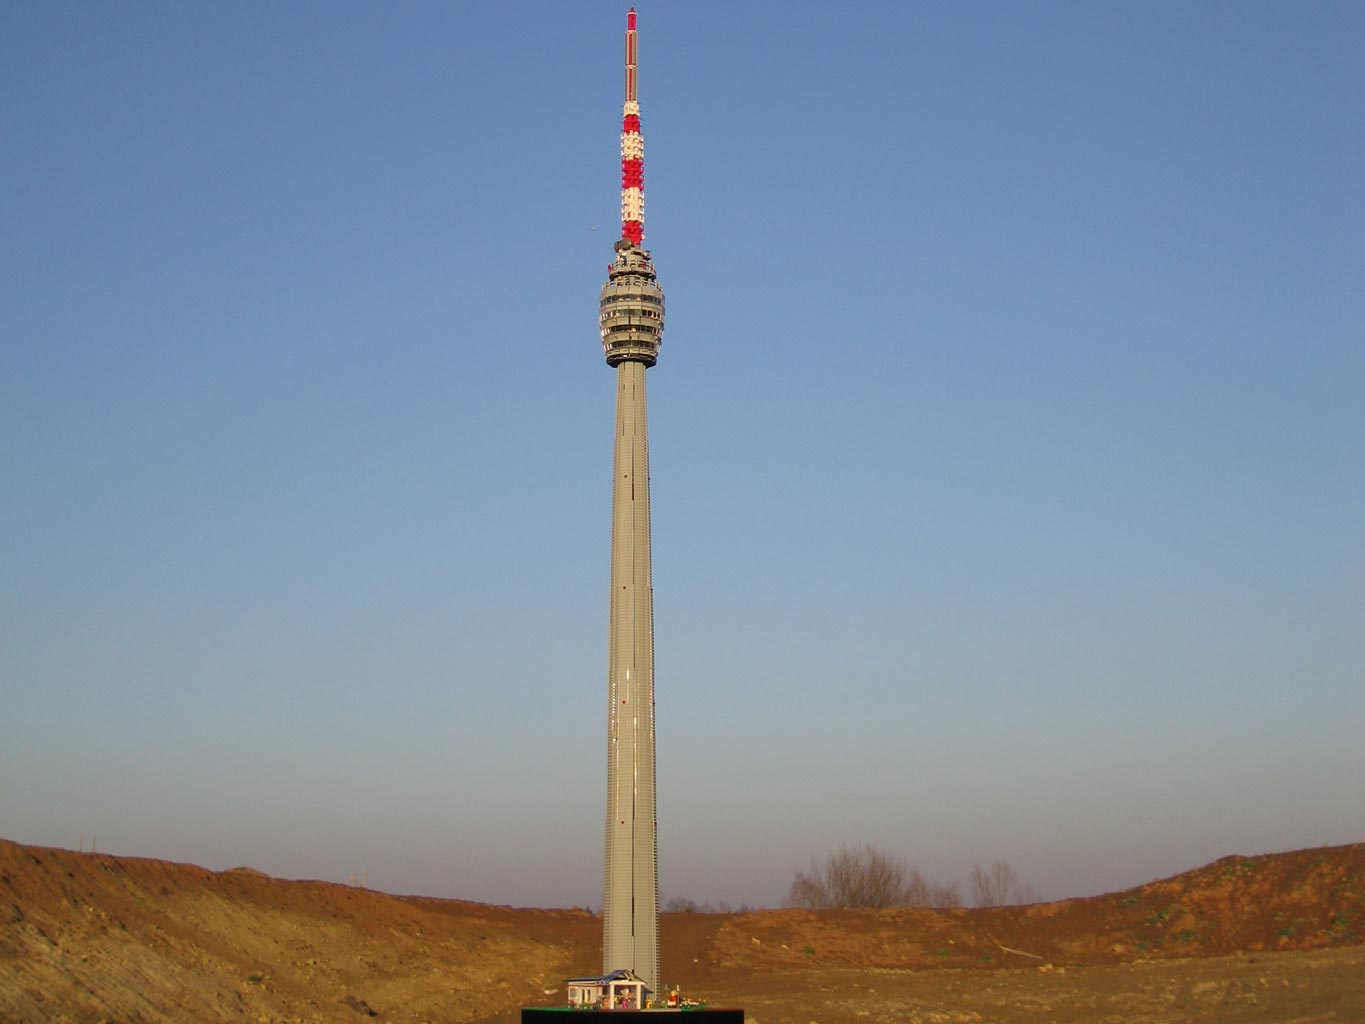 0008_television_tower_1365x1024.jpg